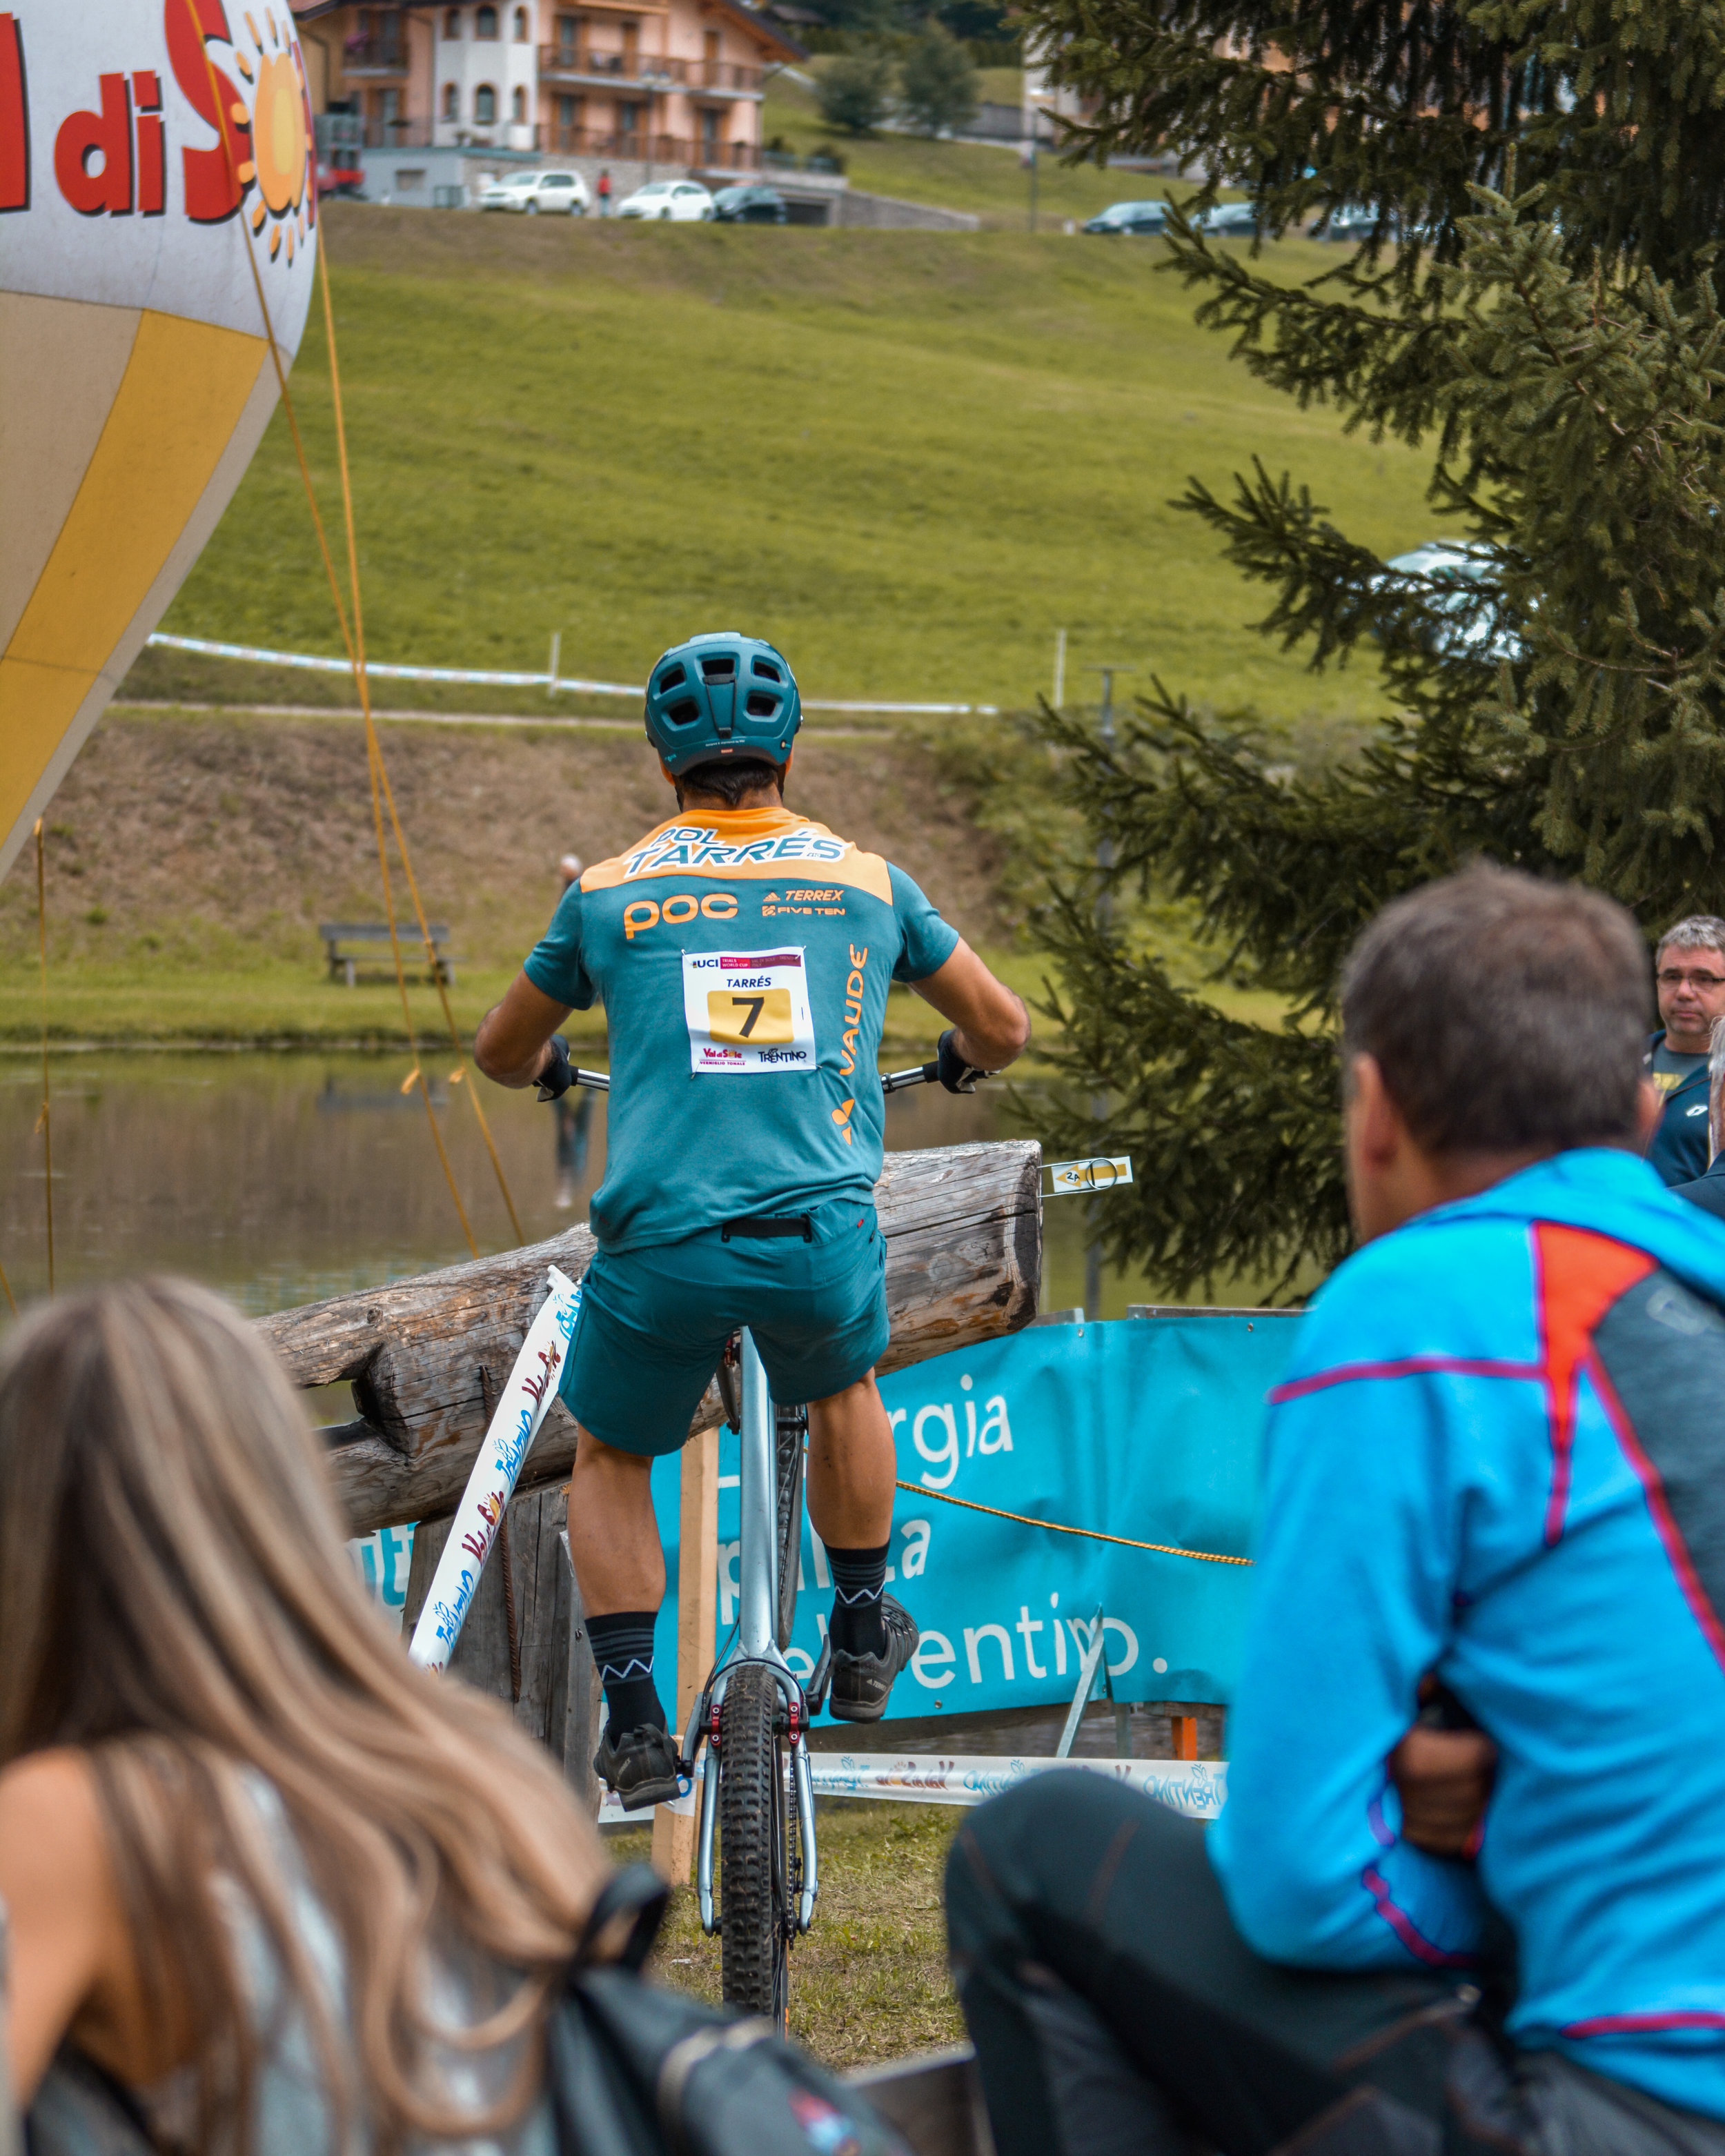 pol_tarres_blog_uci_world_cup_val_di_sole_2019-18.jpg